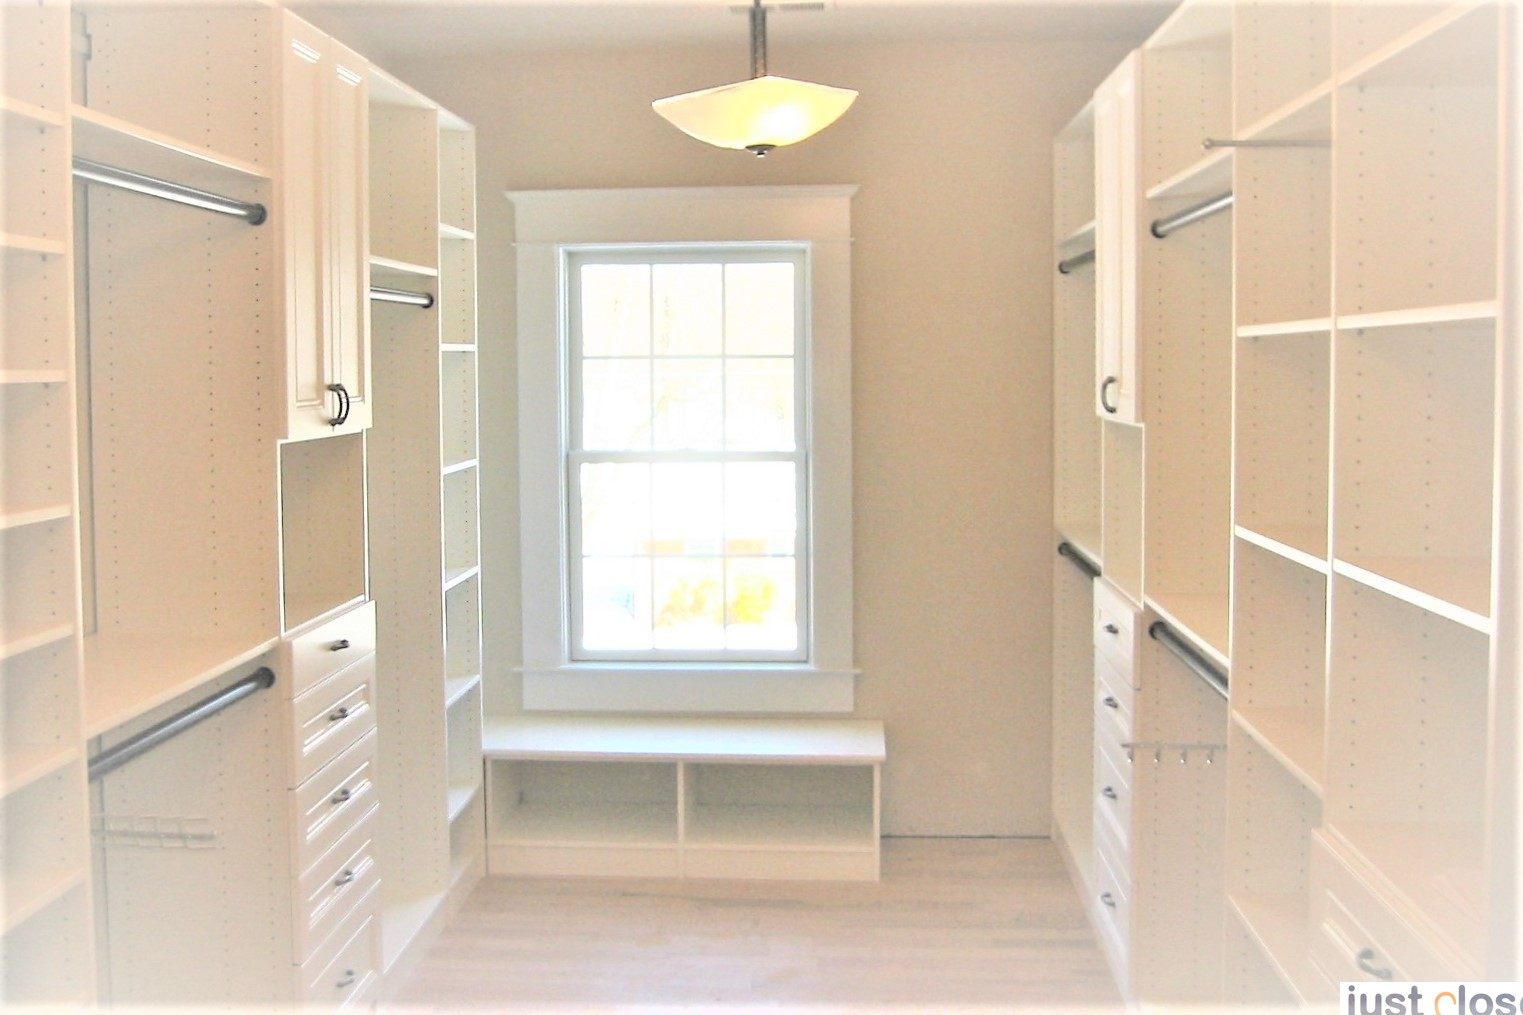 Custom Closet Systems for Walk-in Closets - Just Closets